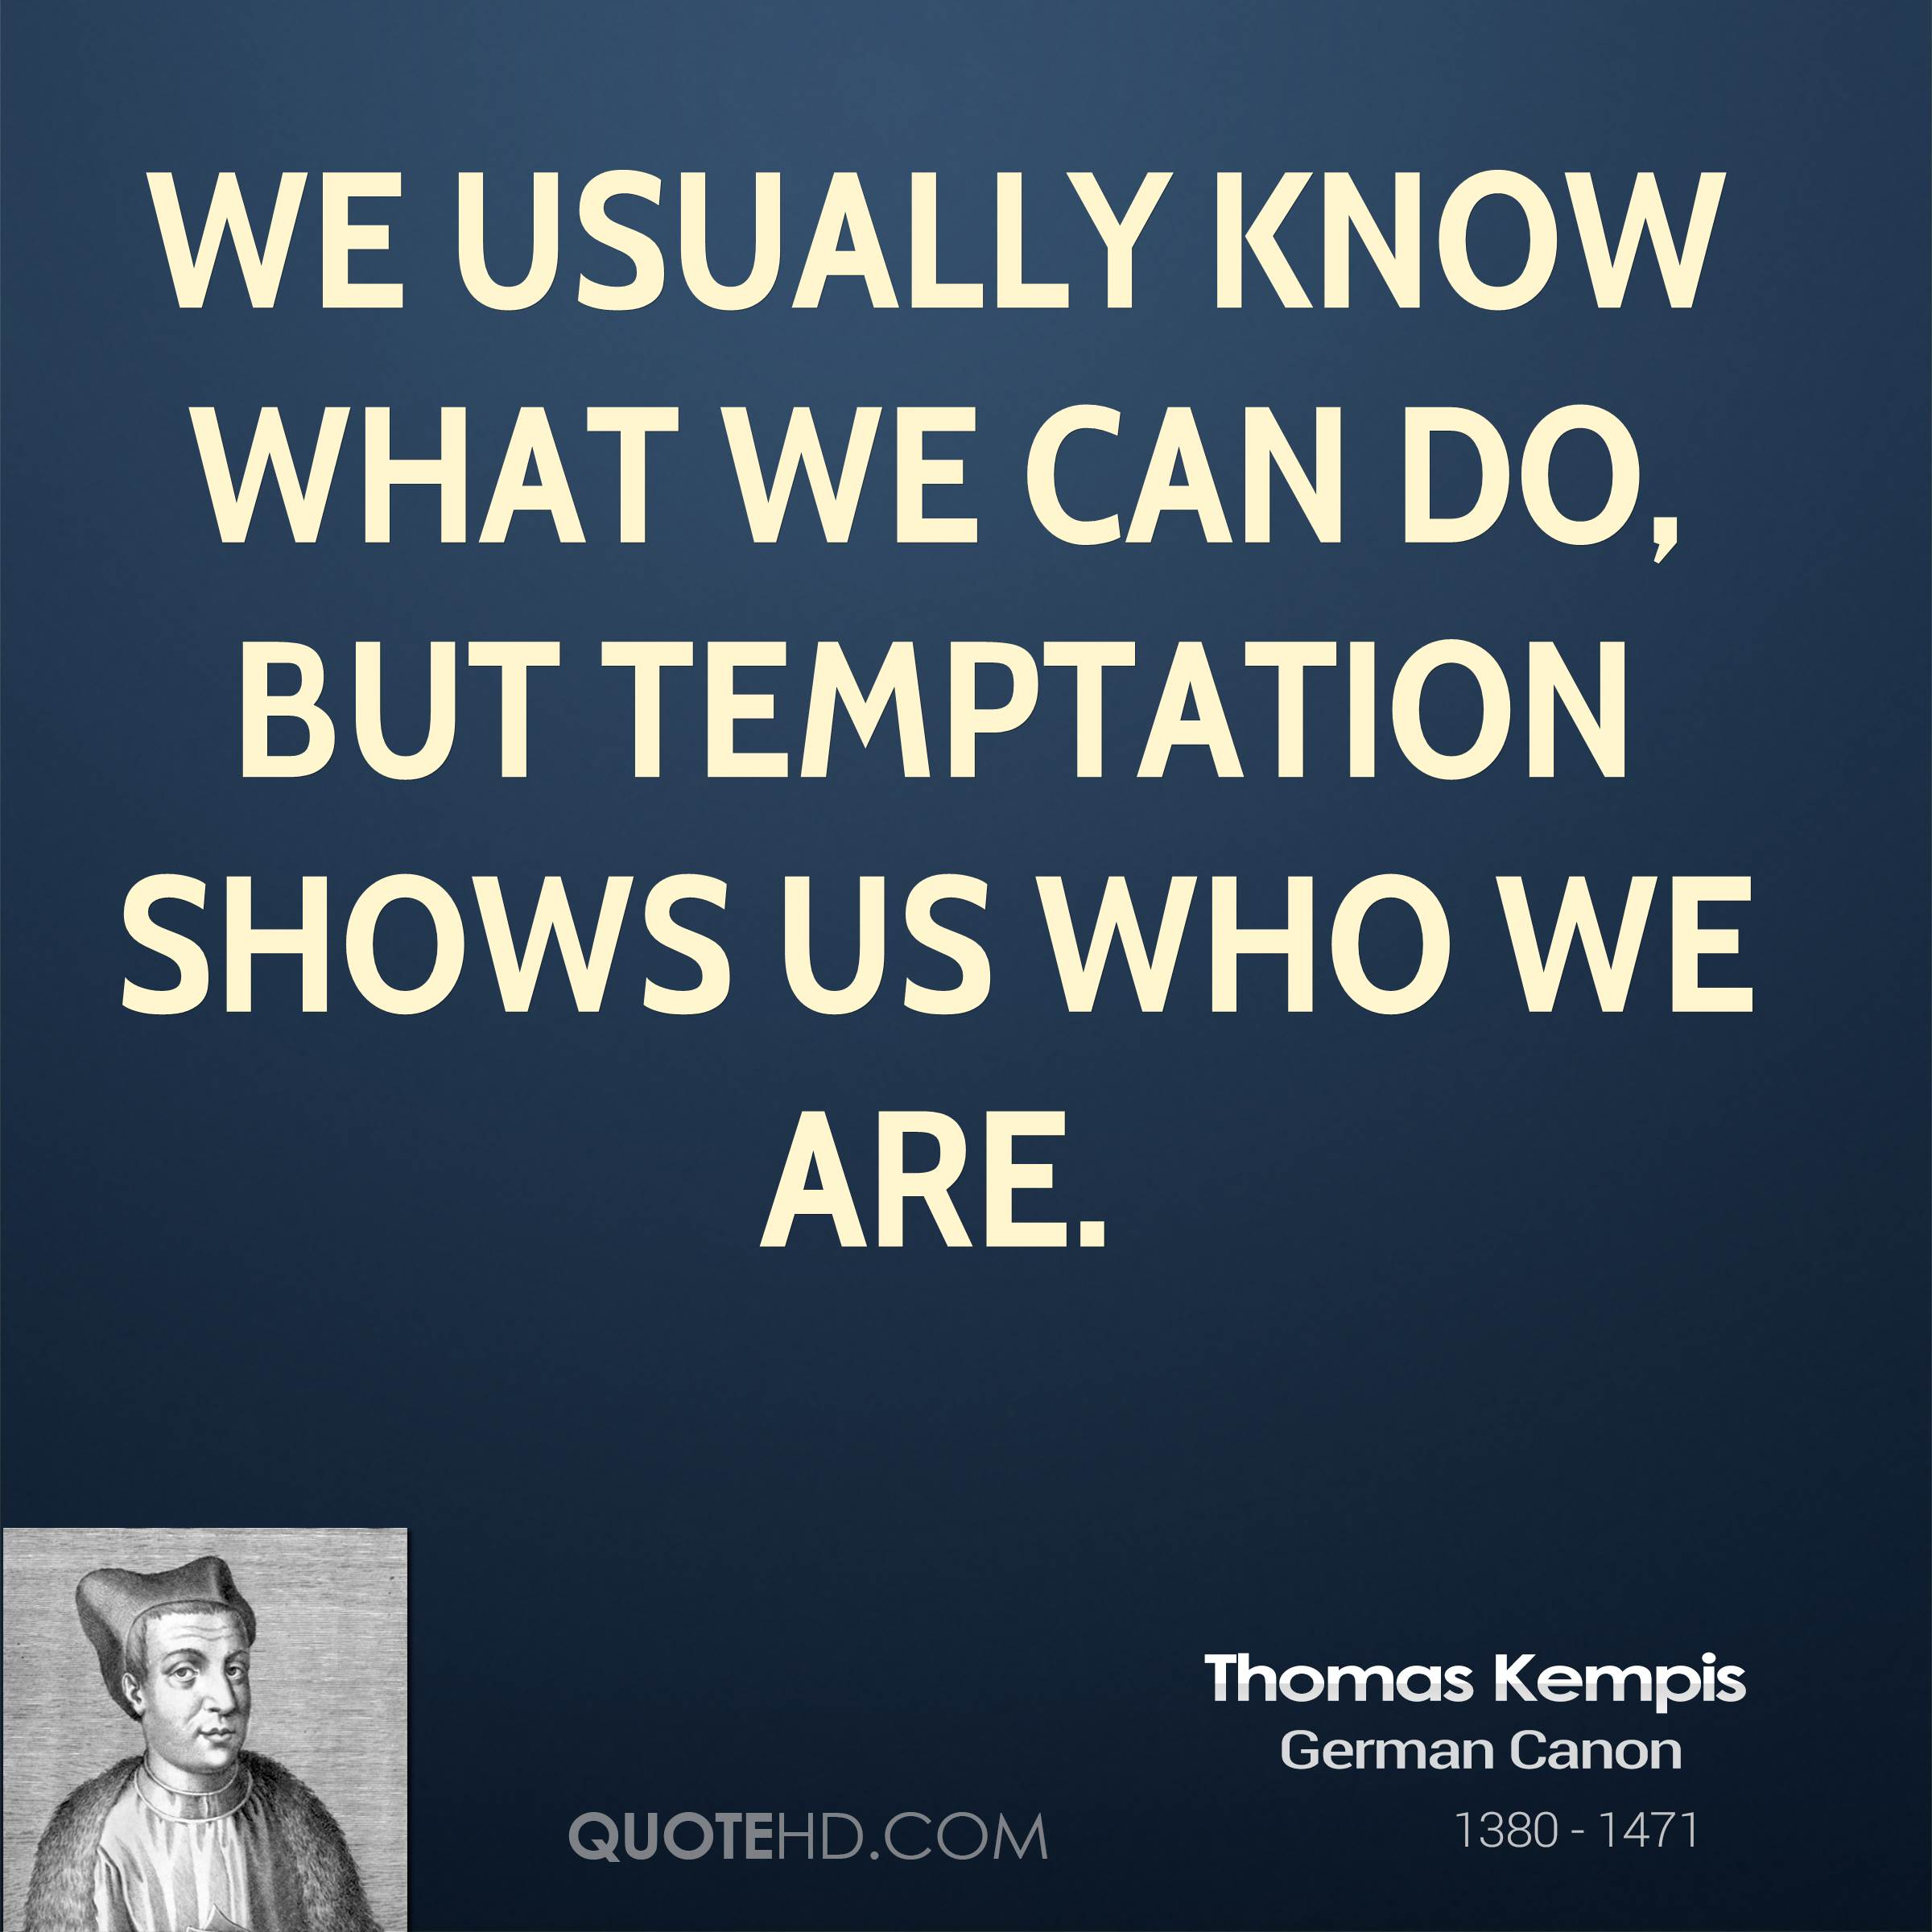 We usually know what we can do, but temptation shows us who we are.